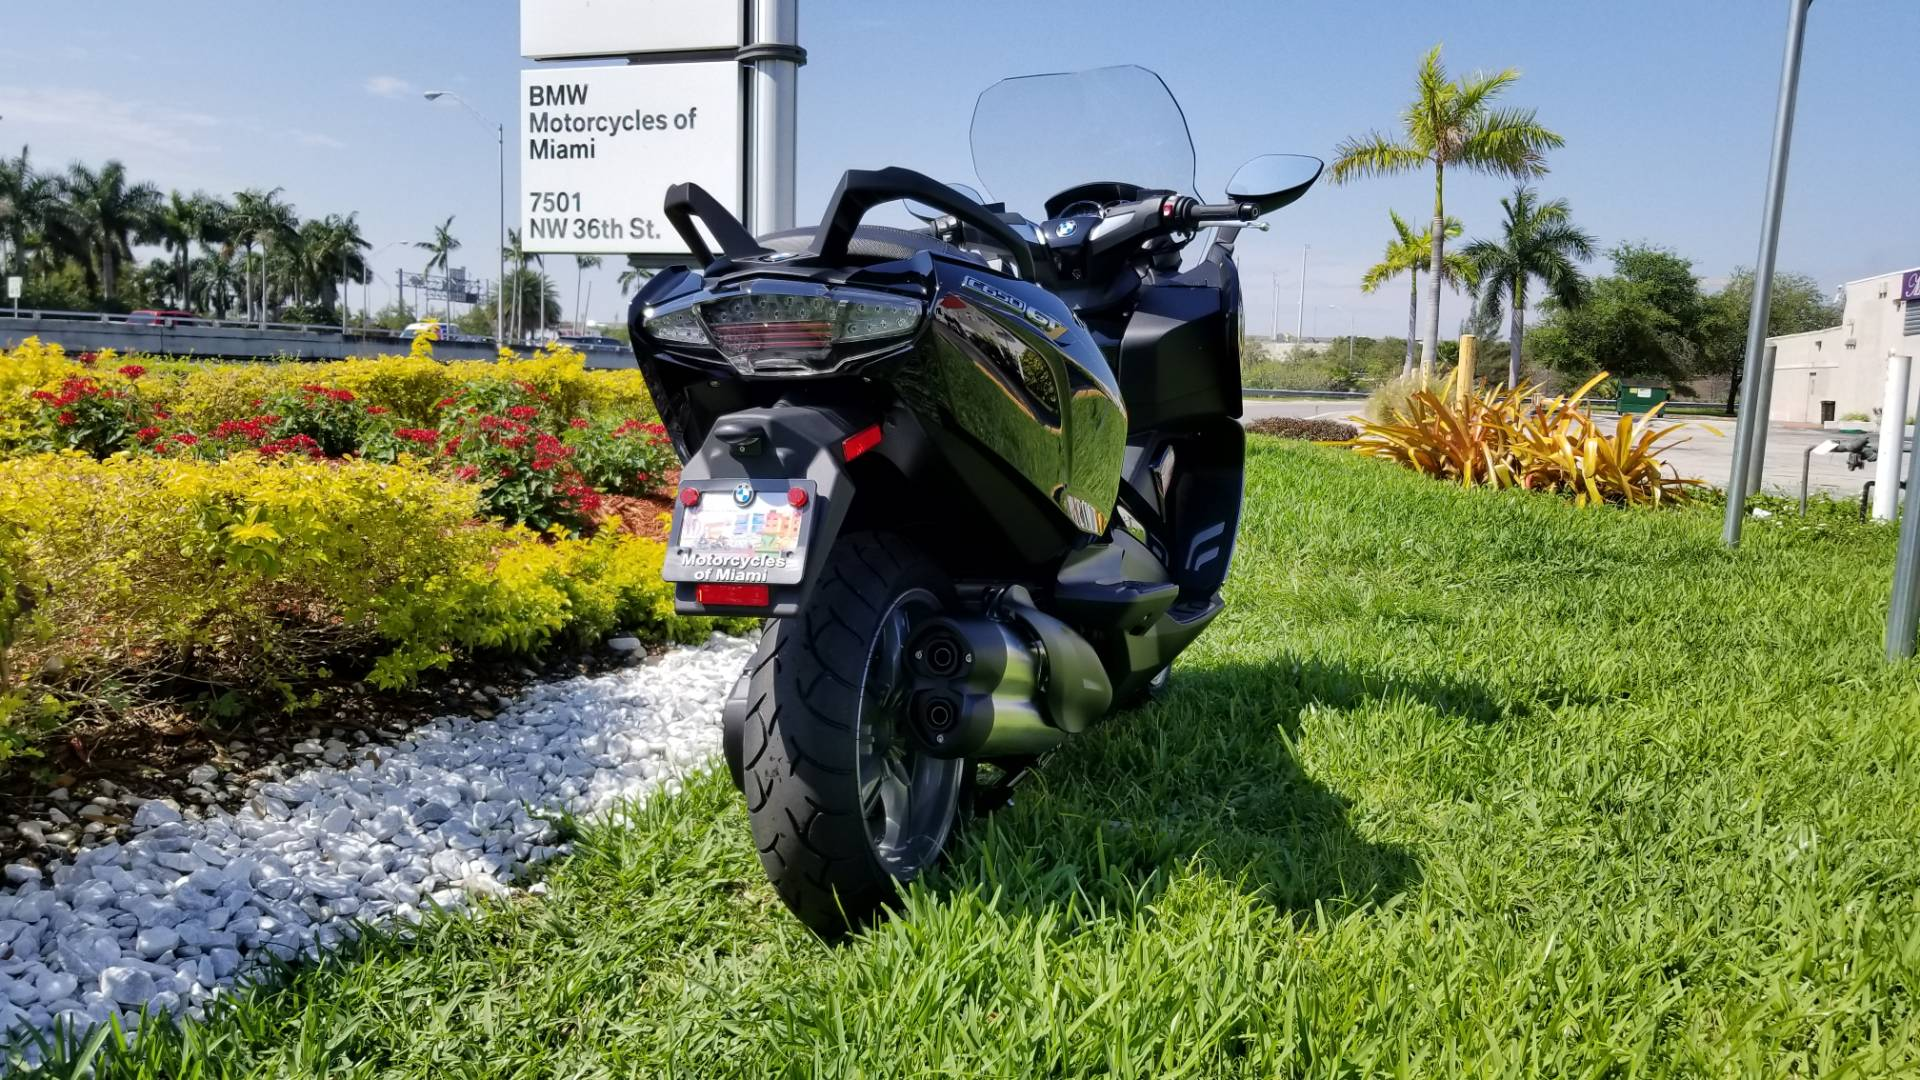 New 2019 BMW C 650 GT for sale, BMW C 650GT for sale, BMW Motorcycle C650GT, new BMW Scooter, Maxi Scooter, BMW. BMW Motorcycles of Miami, Motorcycles of Miami, Motorcycles Miami, New Motorcycles, Used Motorcycles, pre-owned. #BMWMotorcyclesOfMiami #MotorcyclesOfMiami #MotorcyclesMiami - Photo 20